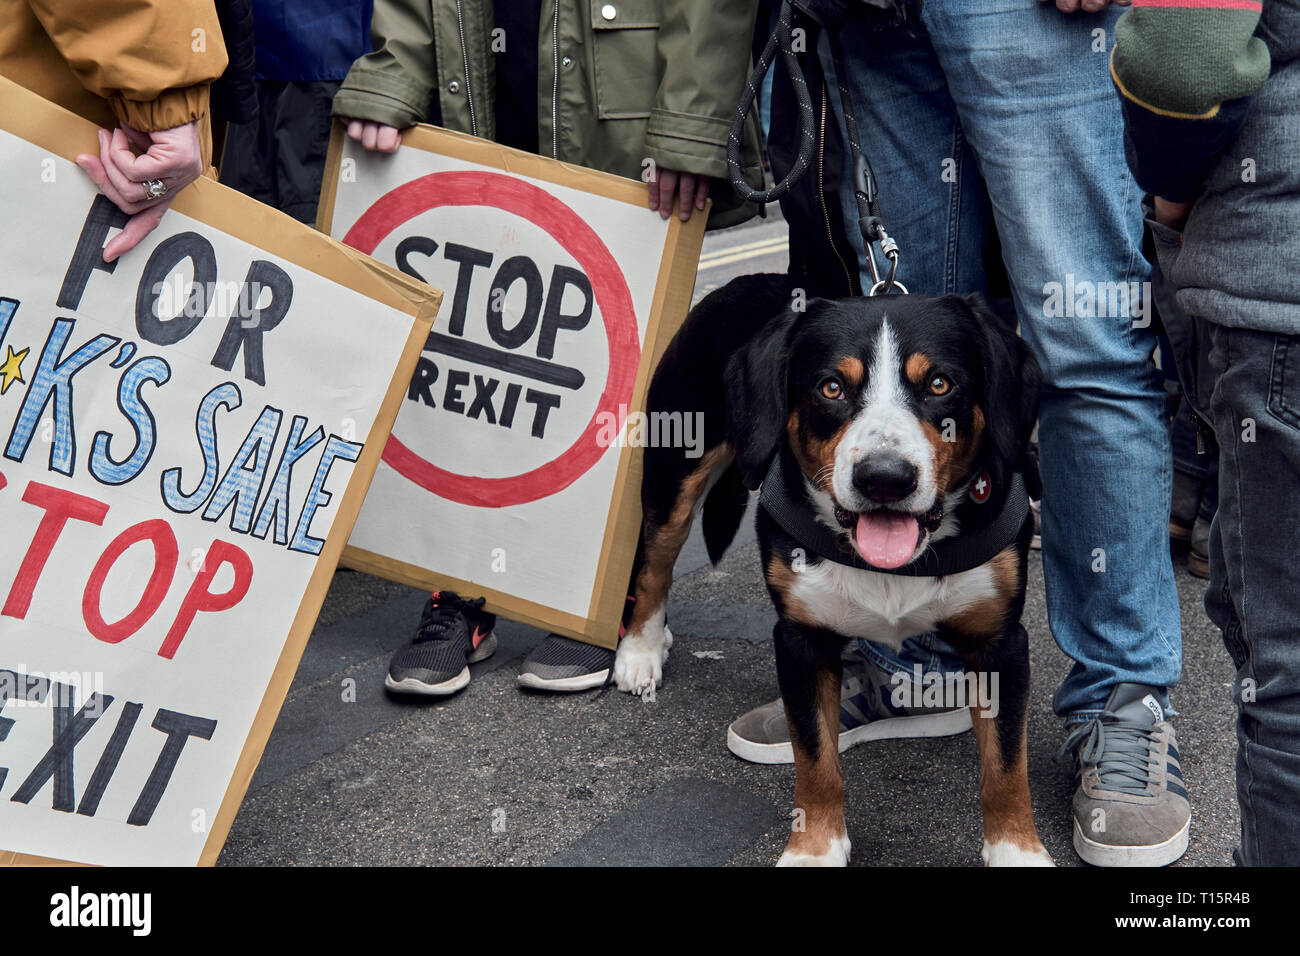 London, UK. 23rd Mar, 2019. Dog, during the protest with clidren holding signs Credit: Rokas Juozapavicius/Alamy Live News Stock Photo